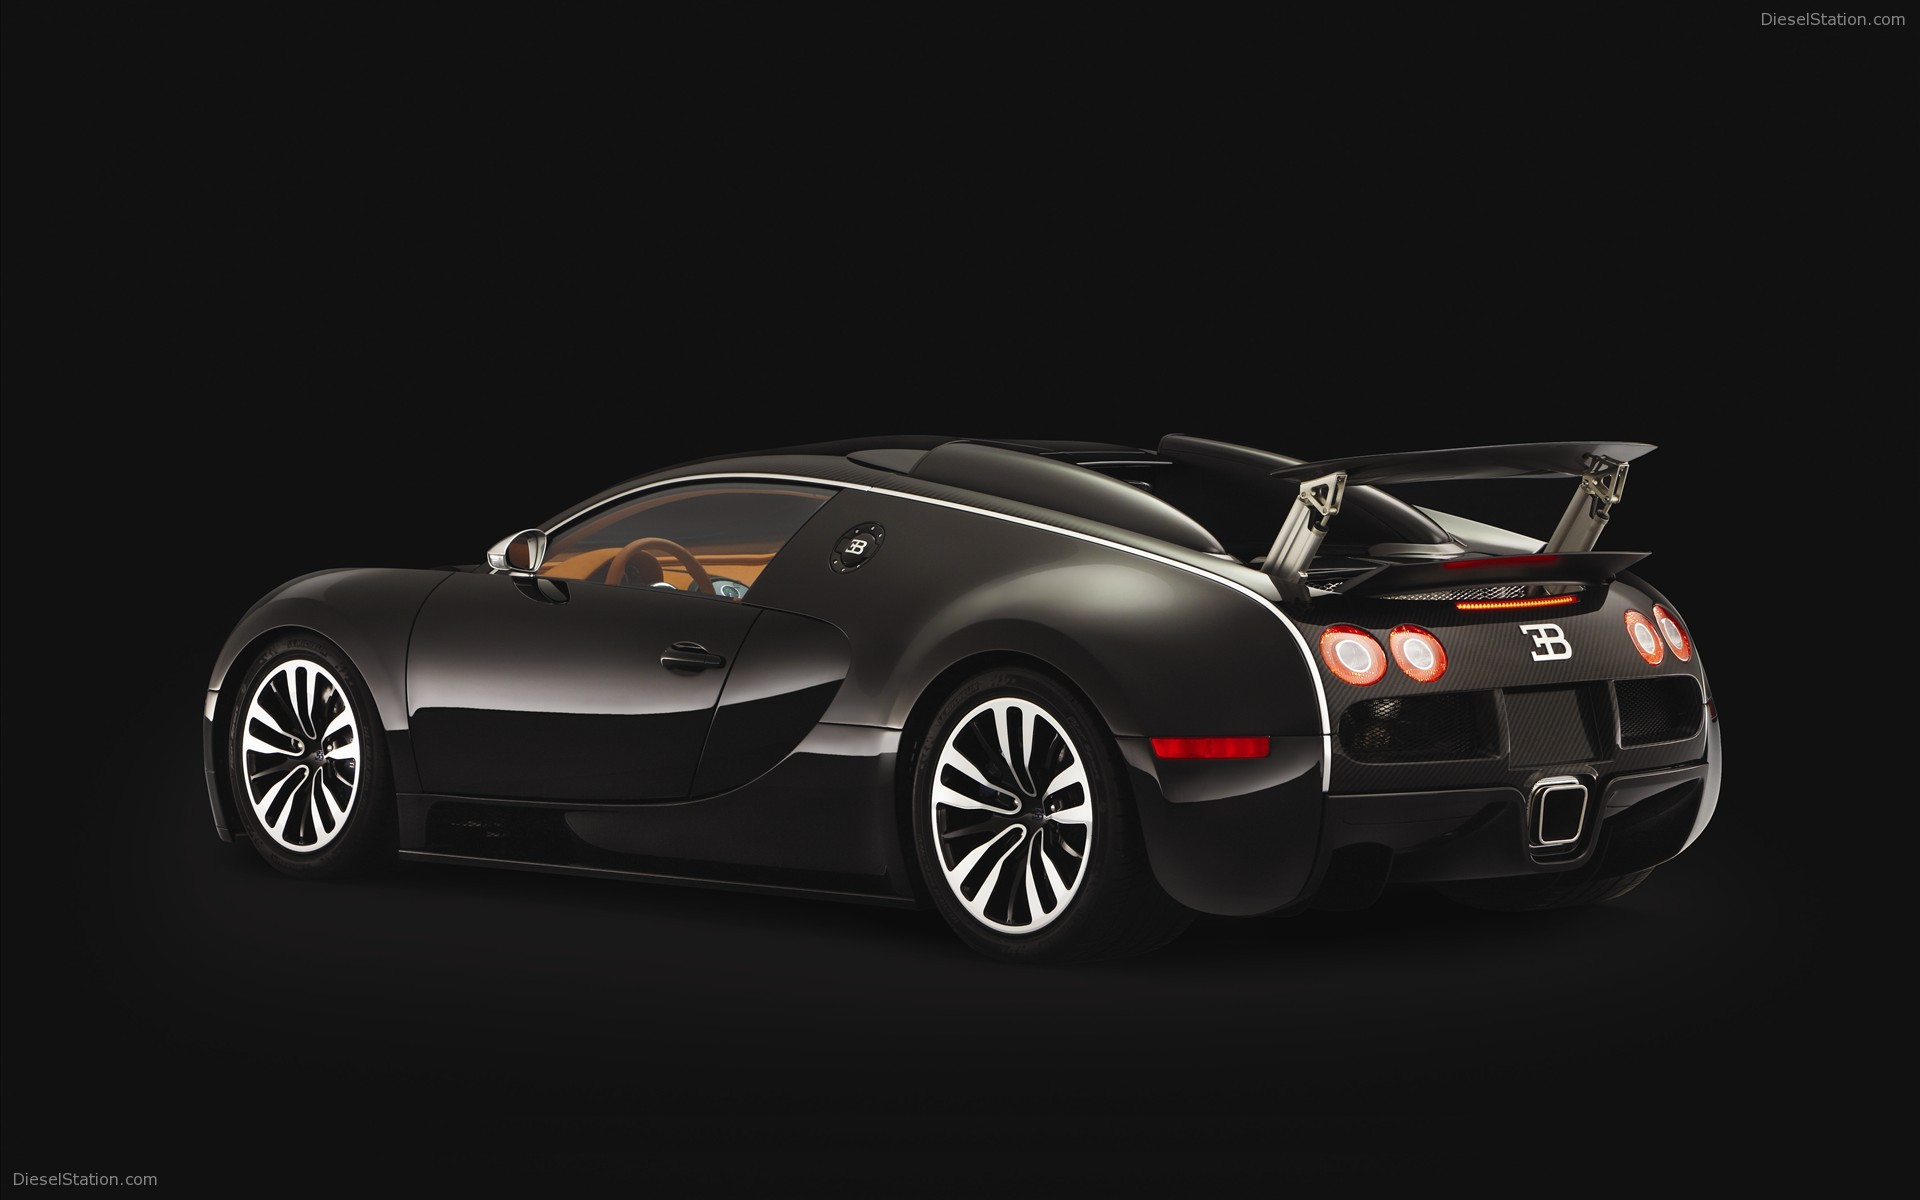 Bugatti EB 164 Veyron Sang Noir Widescreen Exotic Car 1920x1200